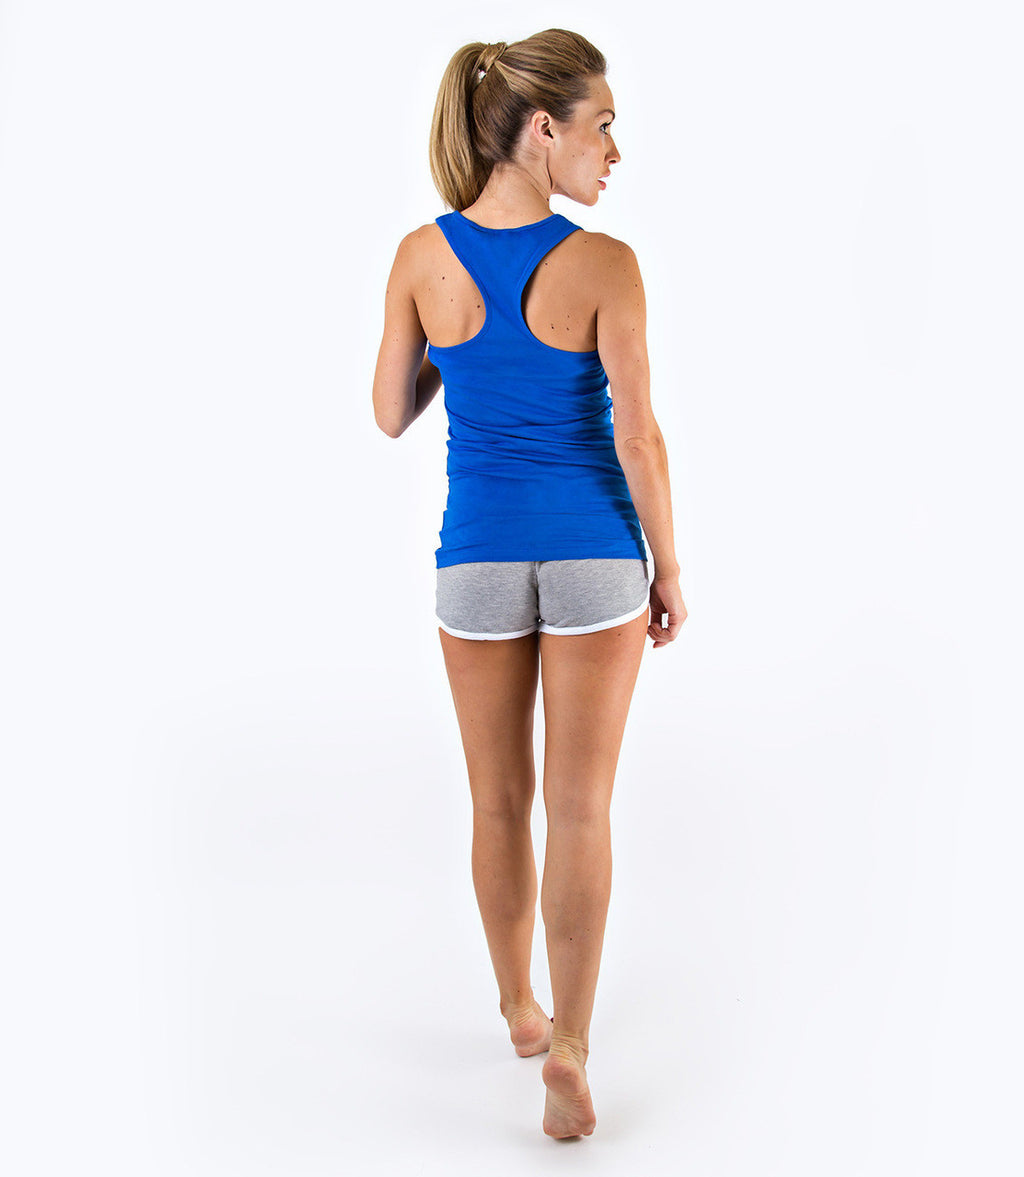 LADIES CLASSIC VEST TOP - NAVY